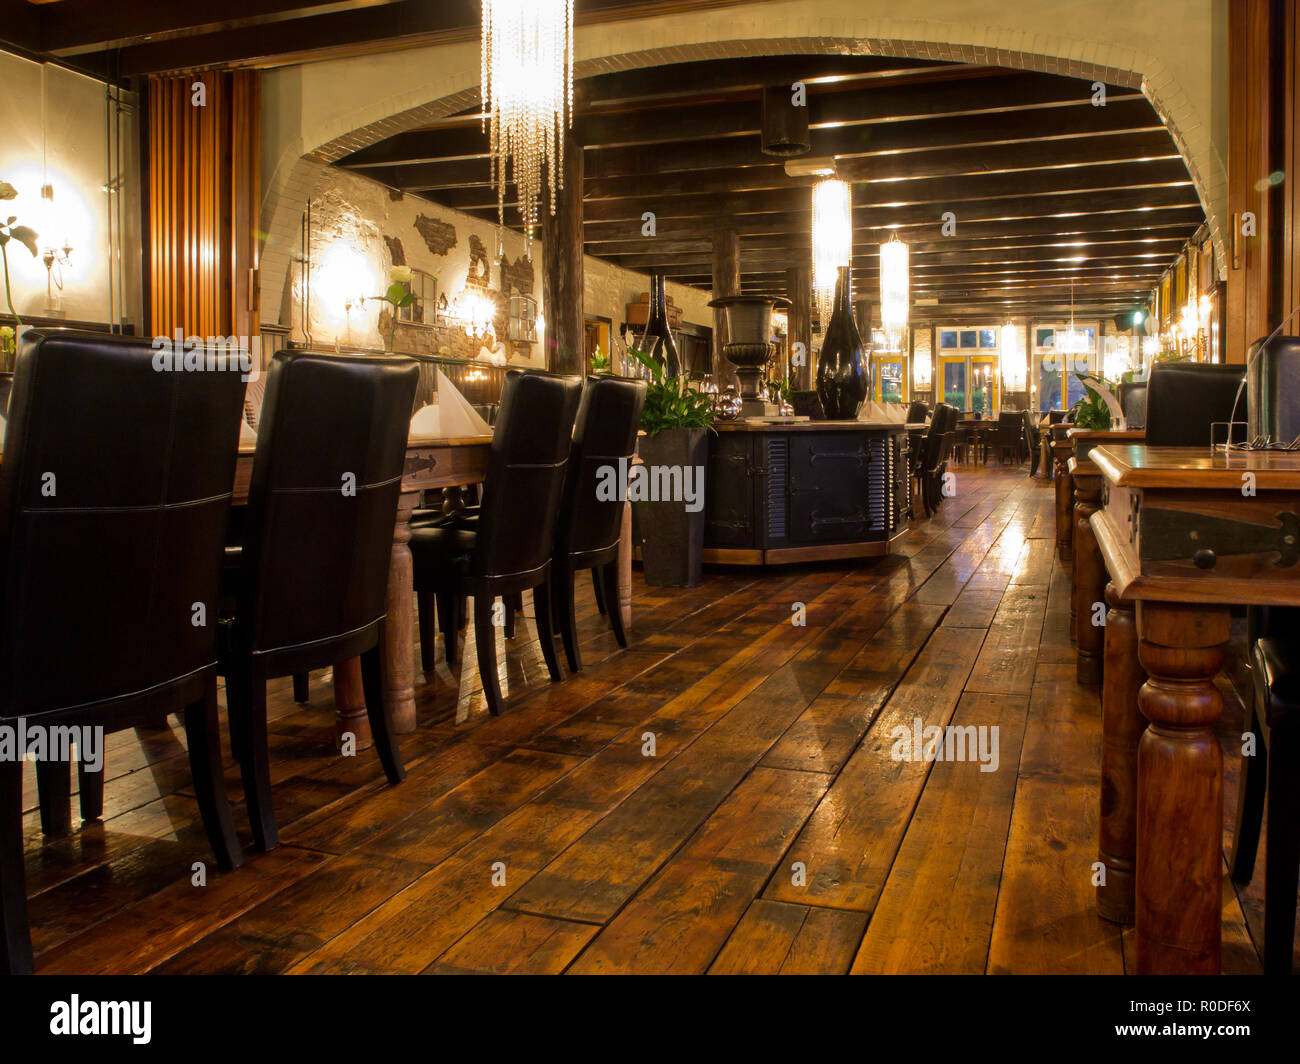 Interior Of A Vintage Restaurant At Night Stock Photo 224032114 Alamy